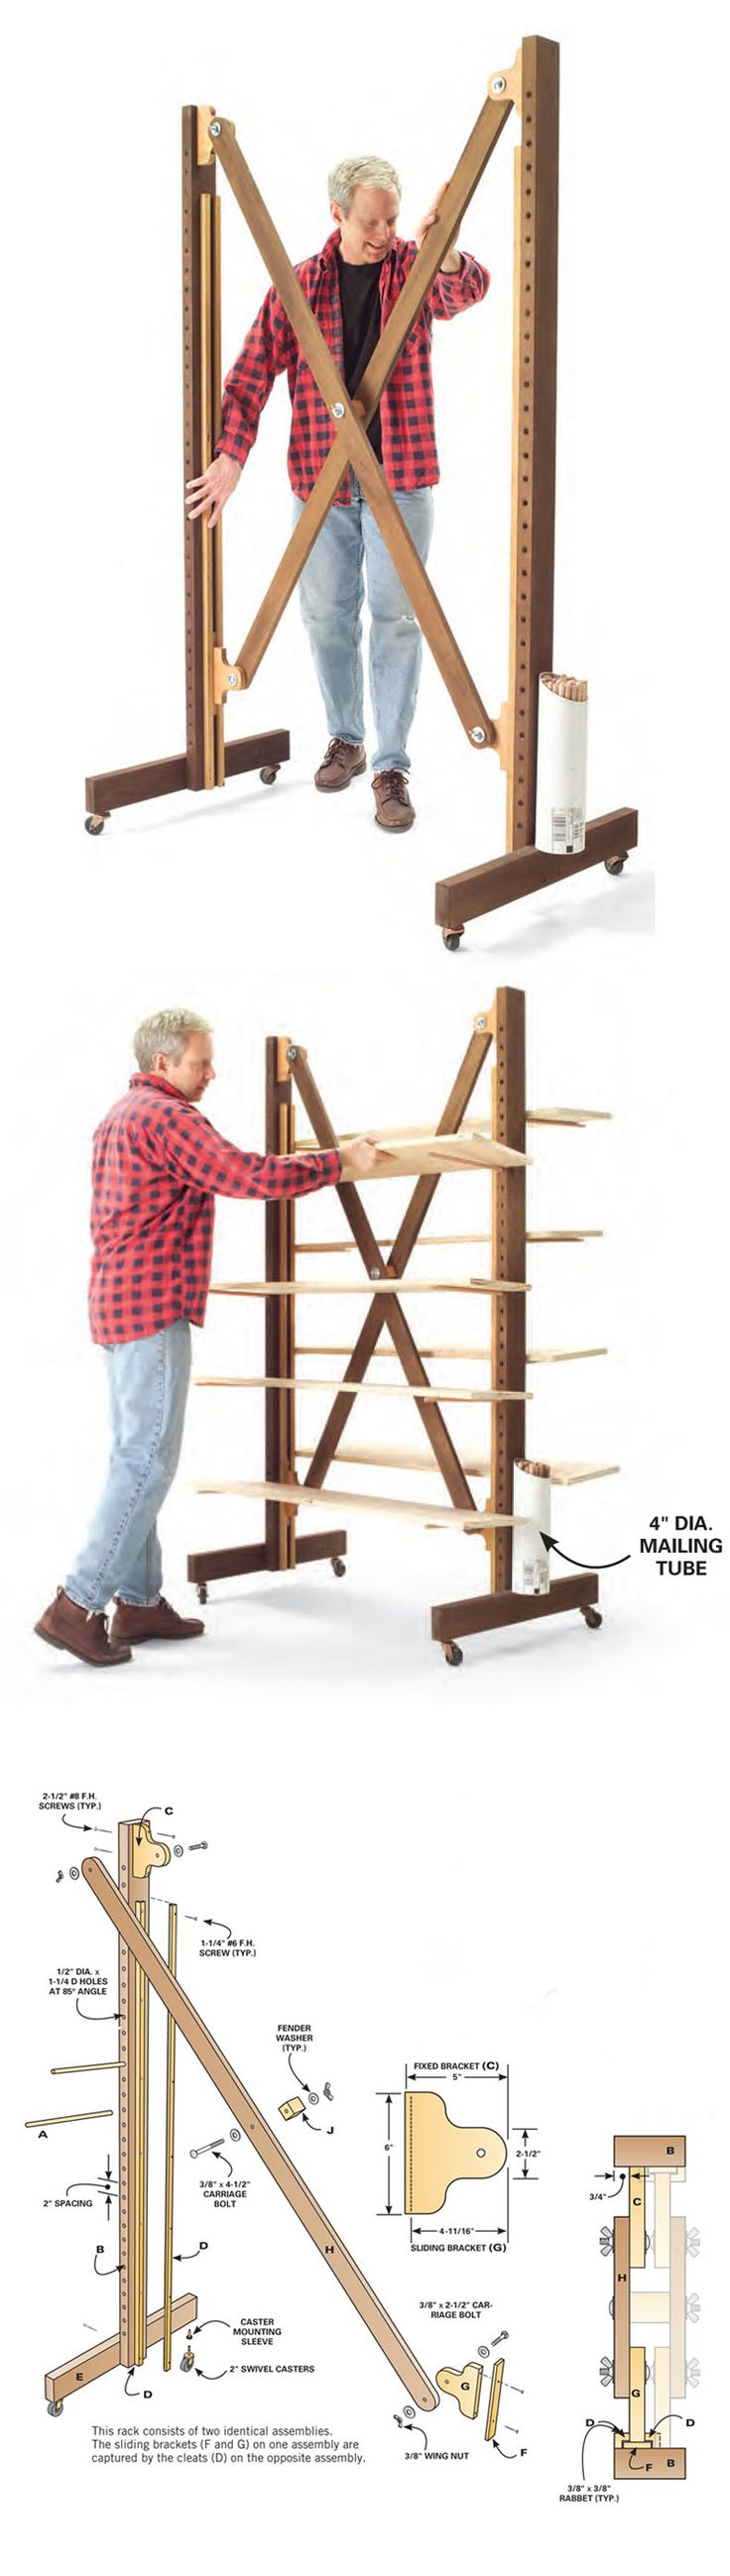 Expandable Parts Rack | http://www.popularwoodworking.com/projects/aw-extra-small-shop-solutions